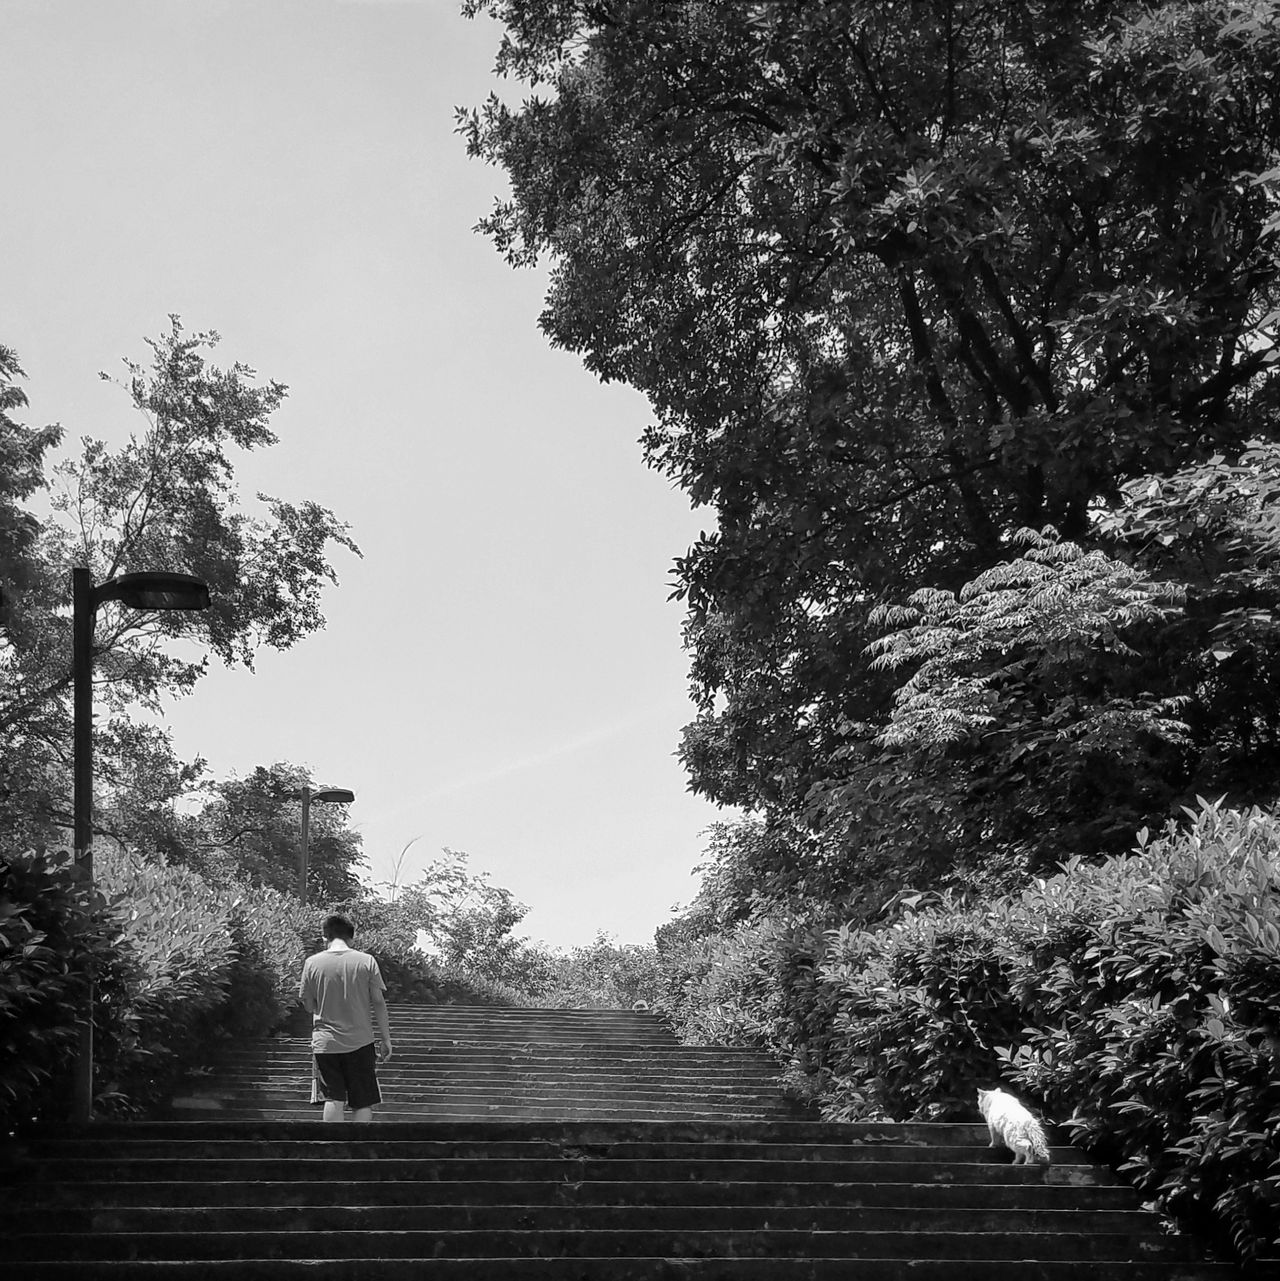 Tree Sky Day Outdoors Nature Steps Man China Campus Cat Blackandwhite Low Angle View  Jiangsu Province Snapshot Snapseed PhonePhotography The Street Photographer - 2017 EyeEm Awards Live For The Story